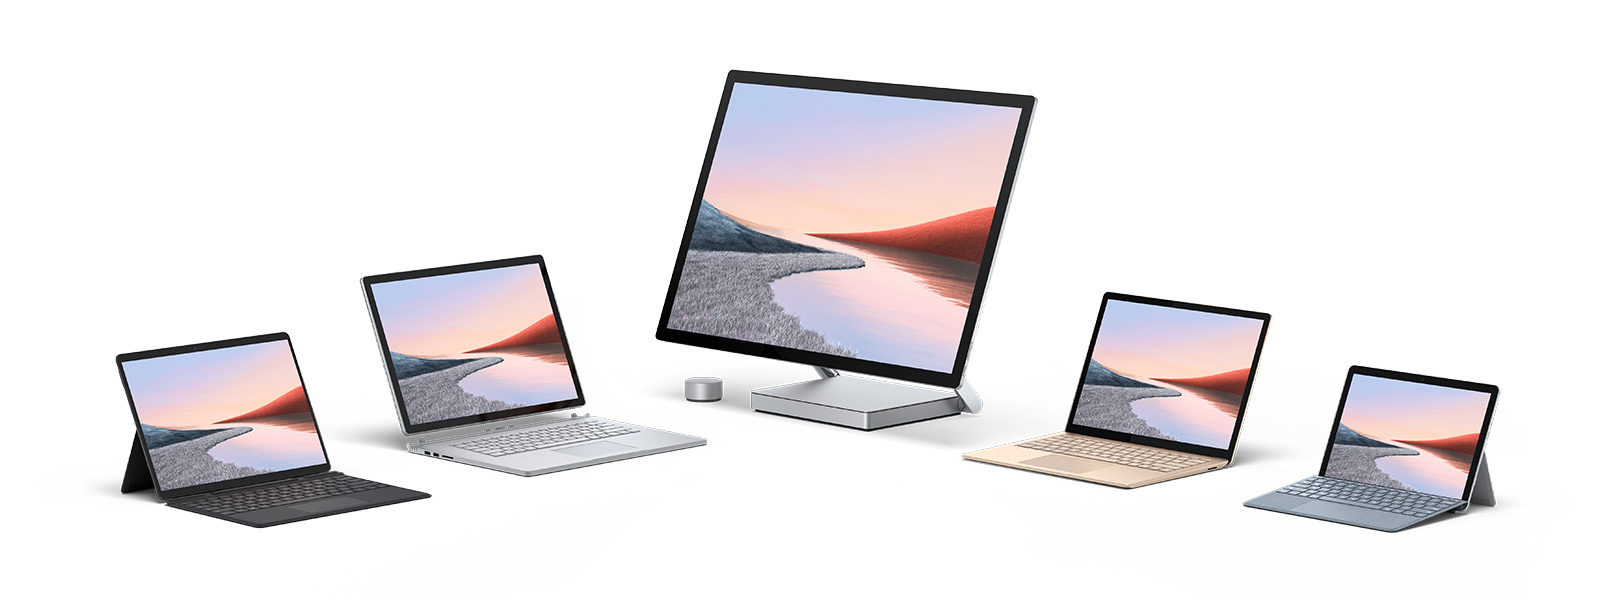 Mehrere Computer von Surface, darunter Surface Pro 7, Surface Pro X , Surface Book 3, Surface Studio 2 und Surface Go 2